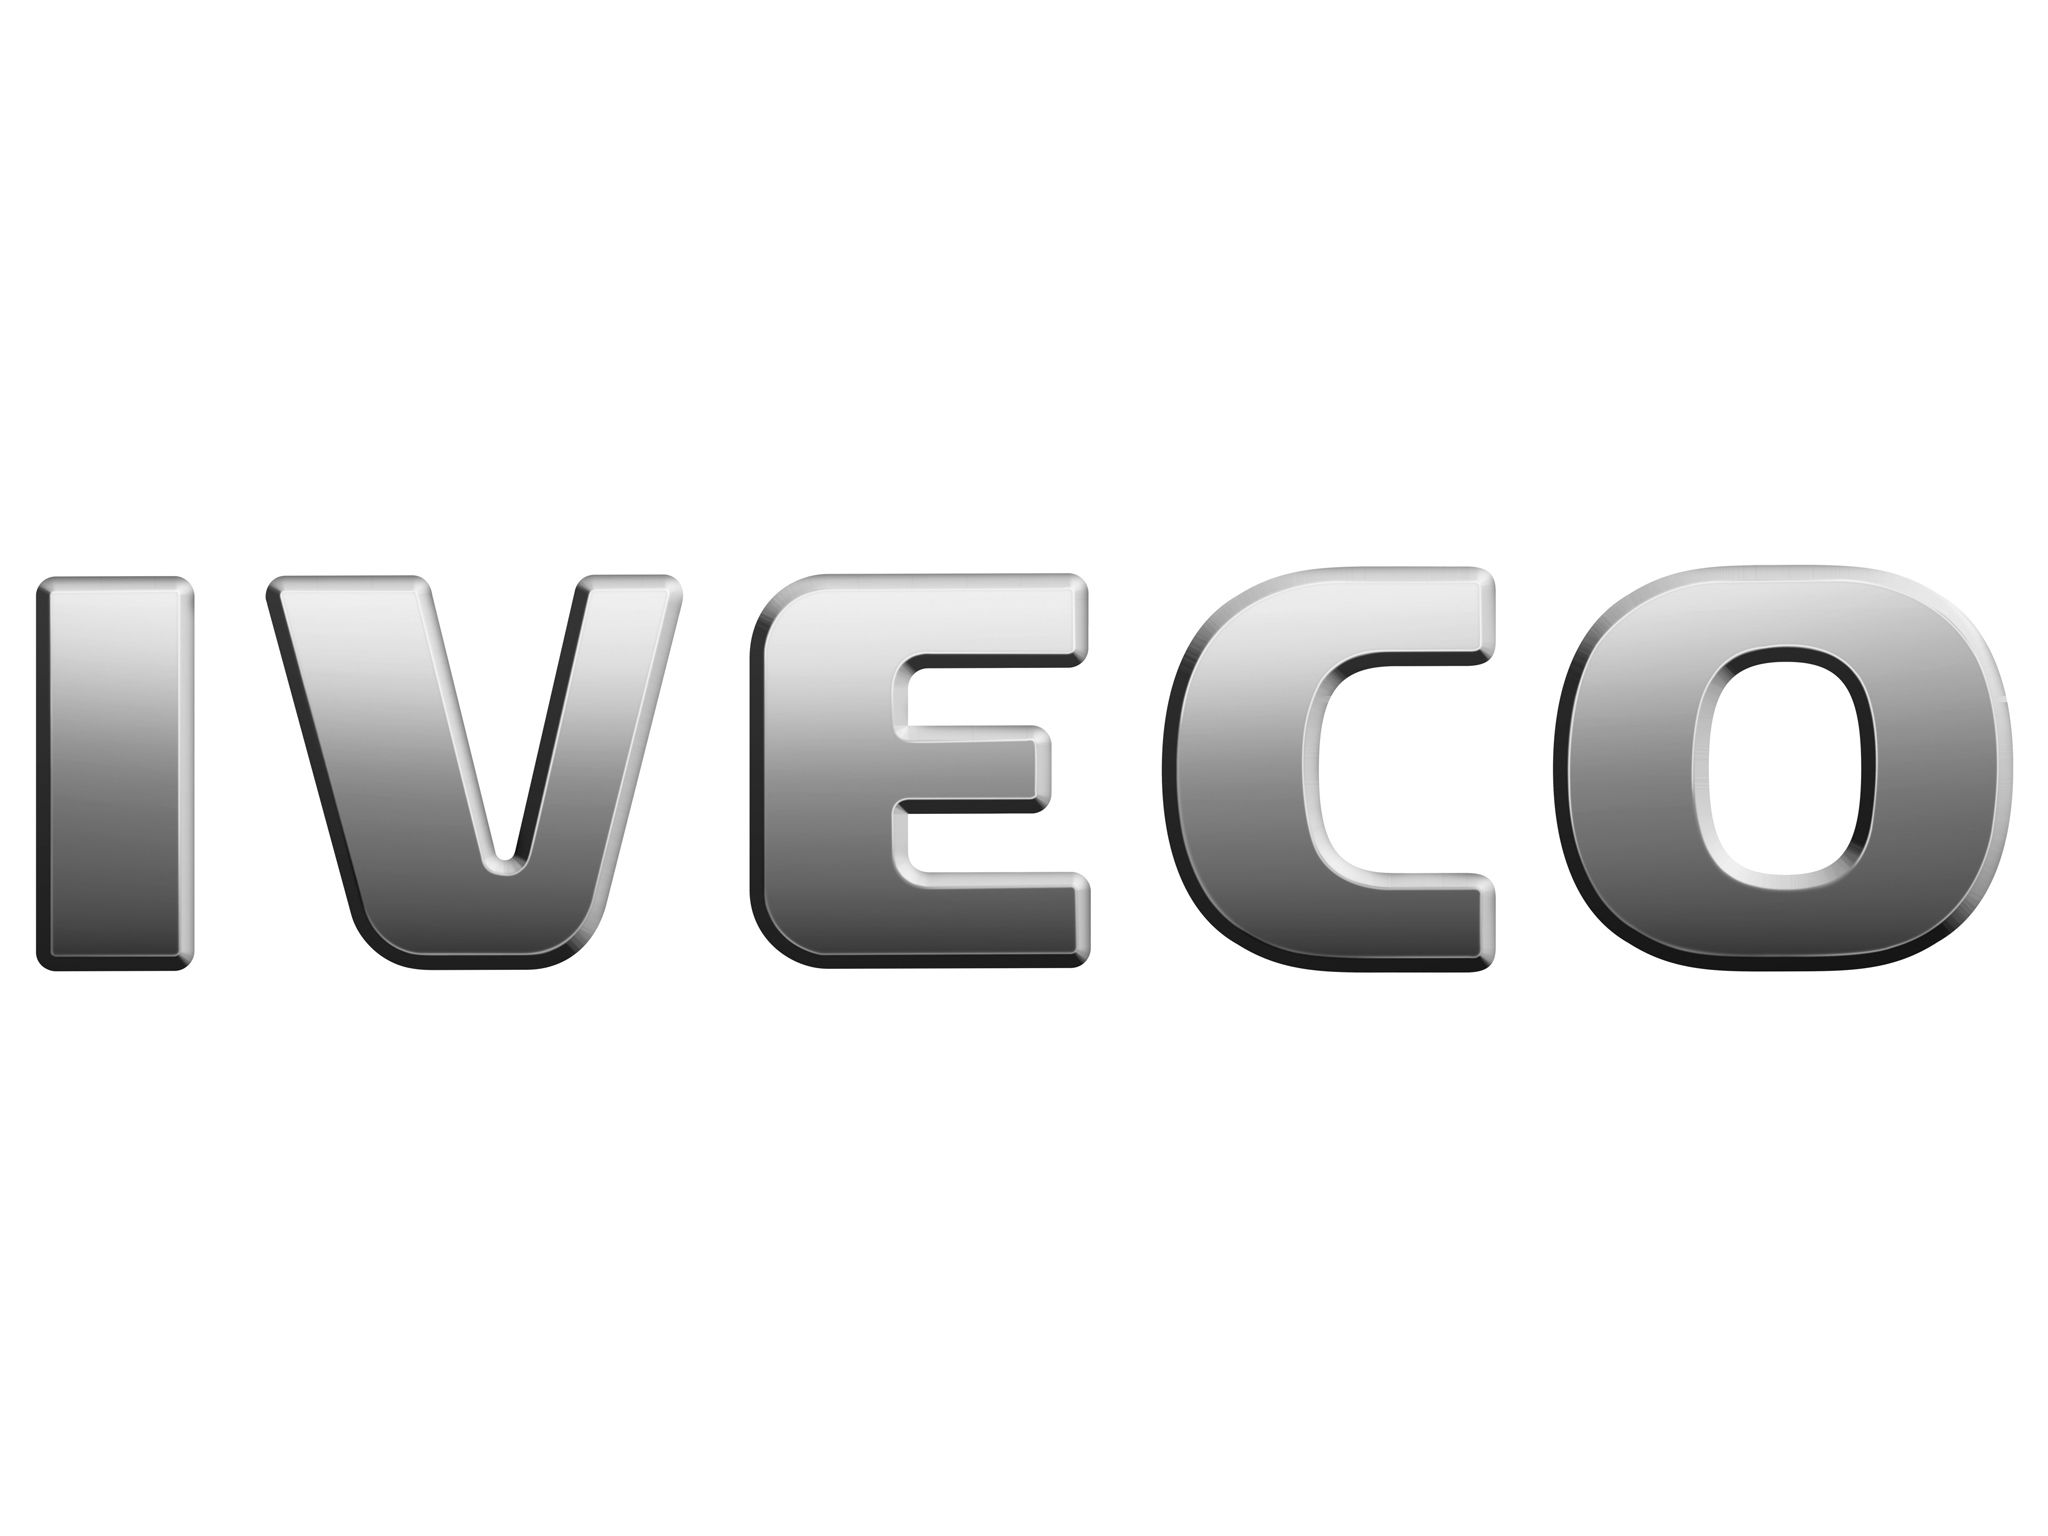 Iveco Logo Wallpaper